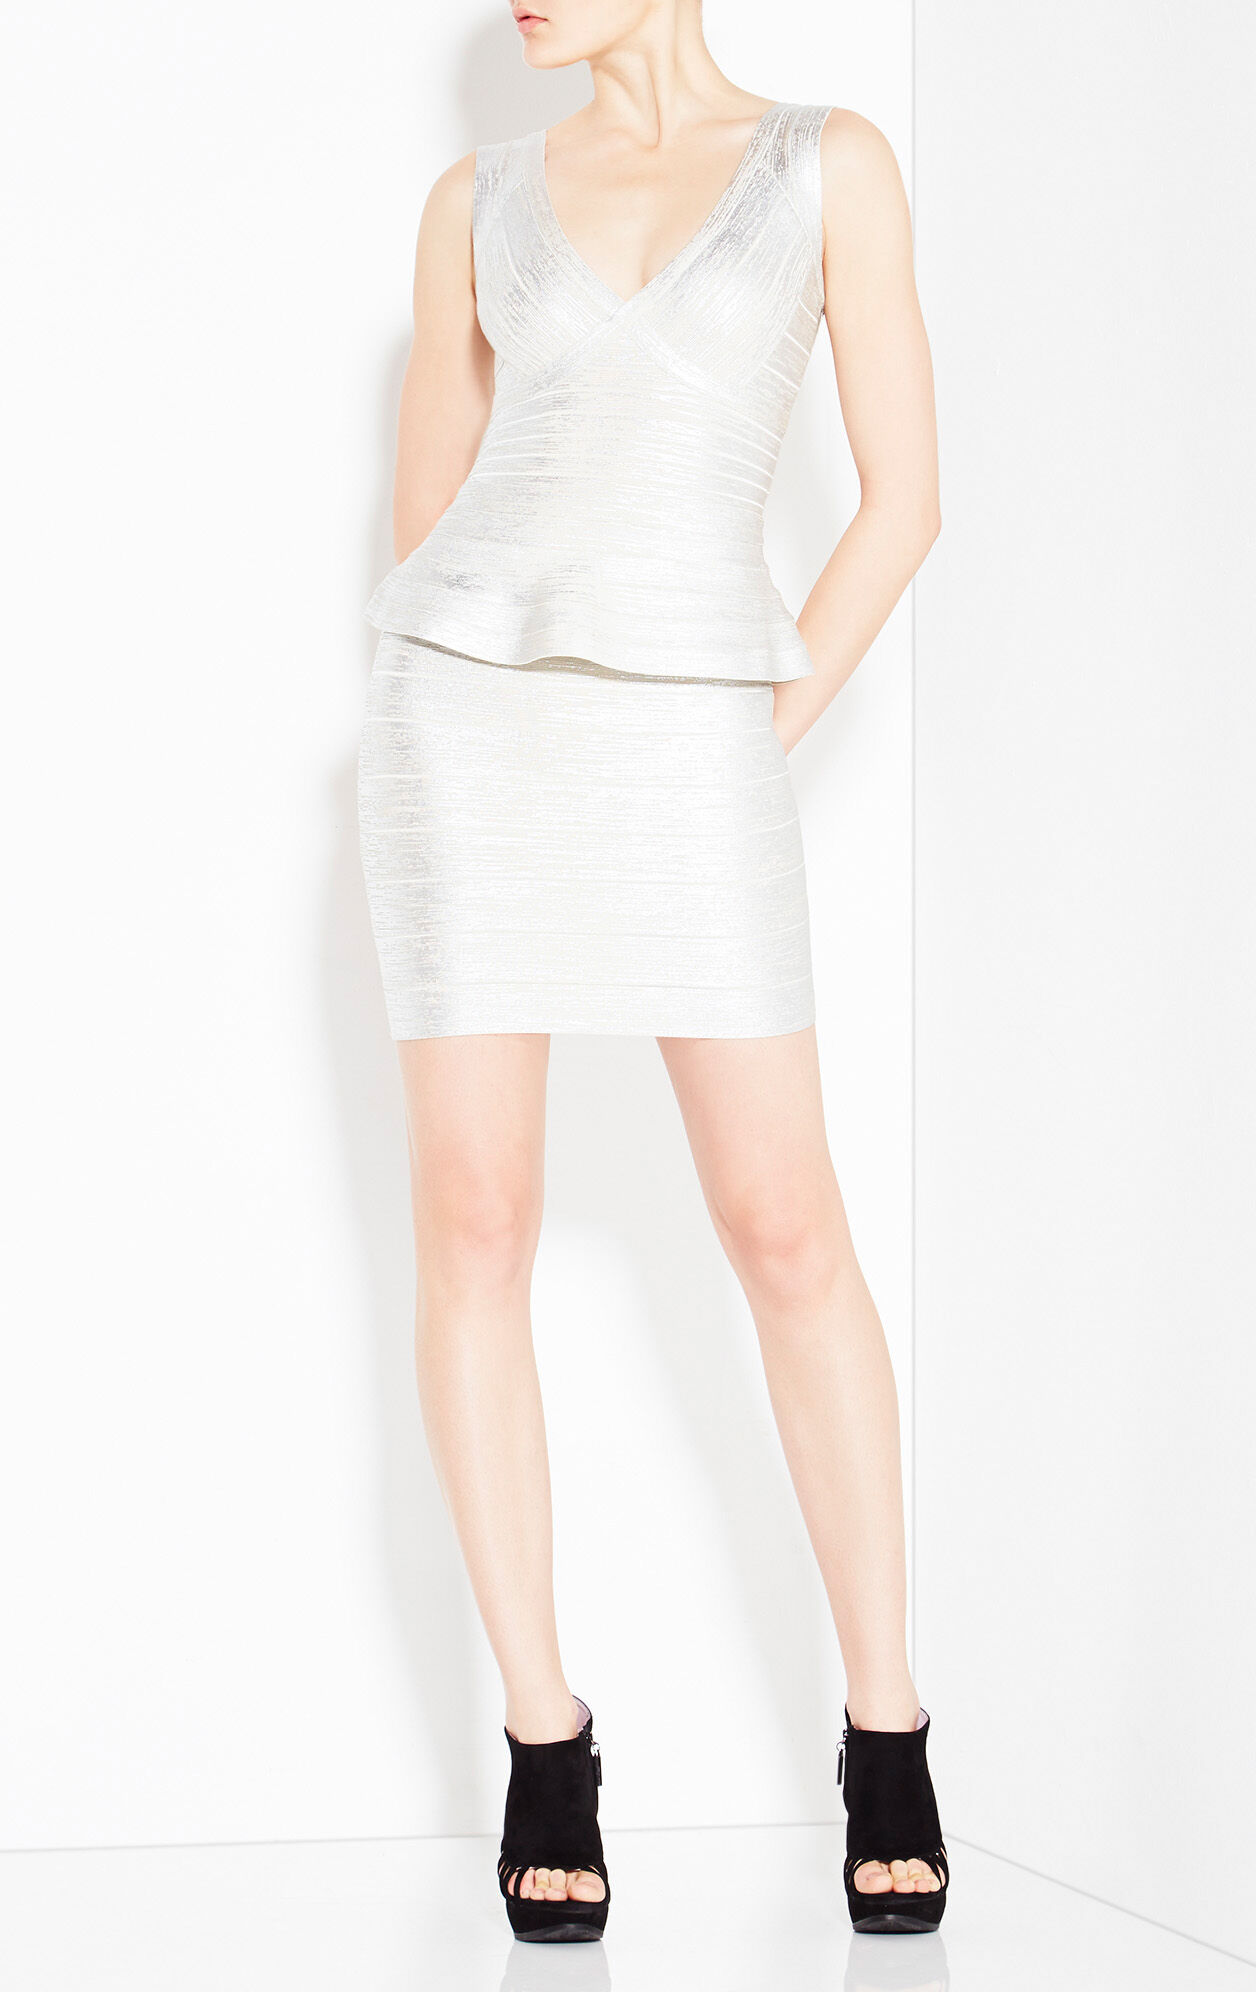 Rebeca Woodgrain Foil Print Dress